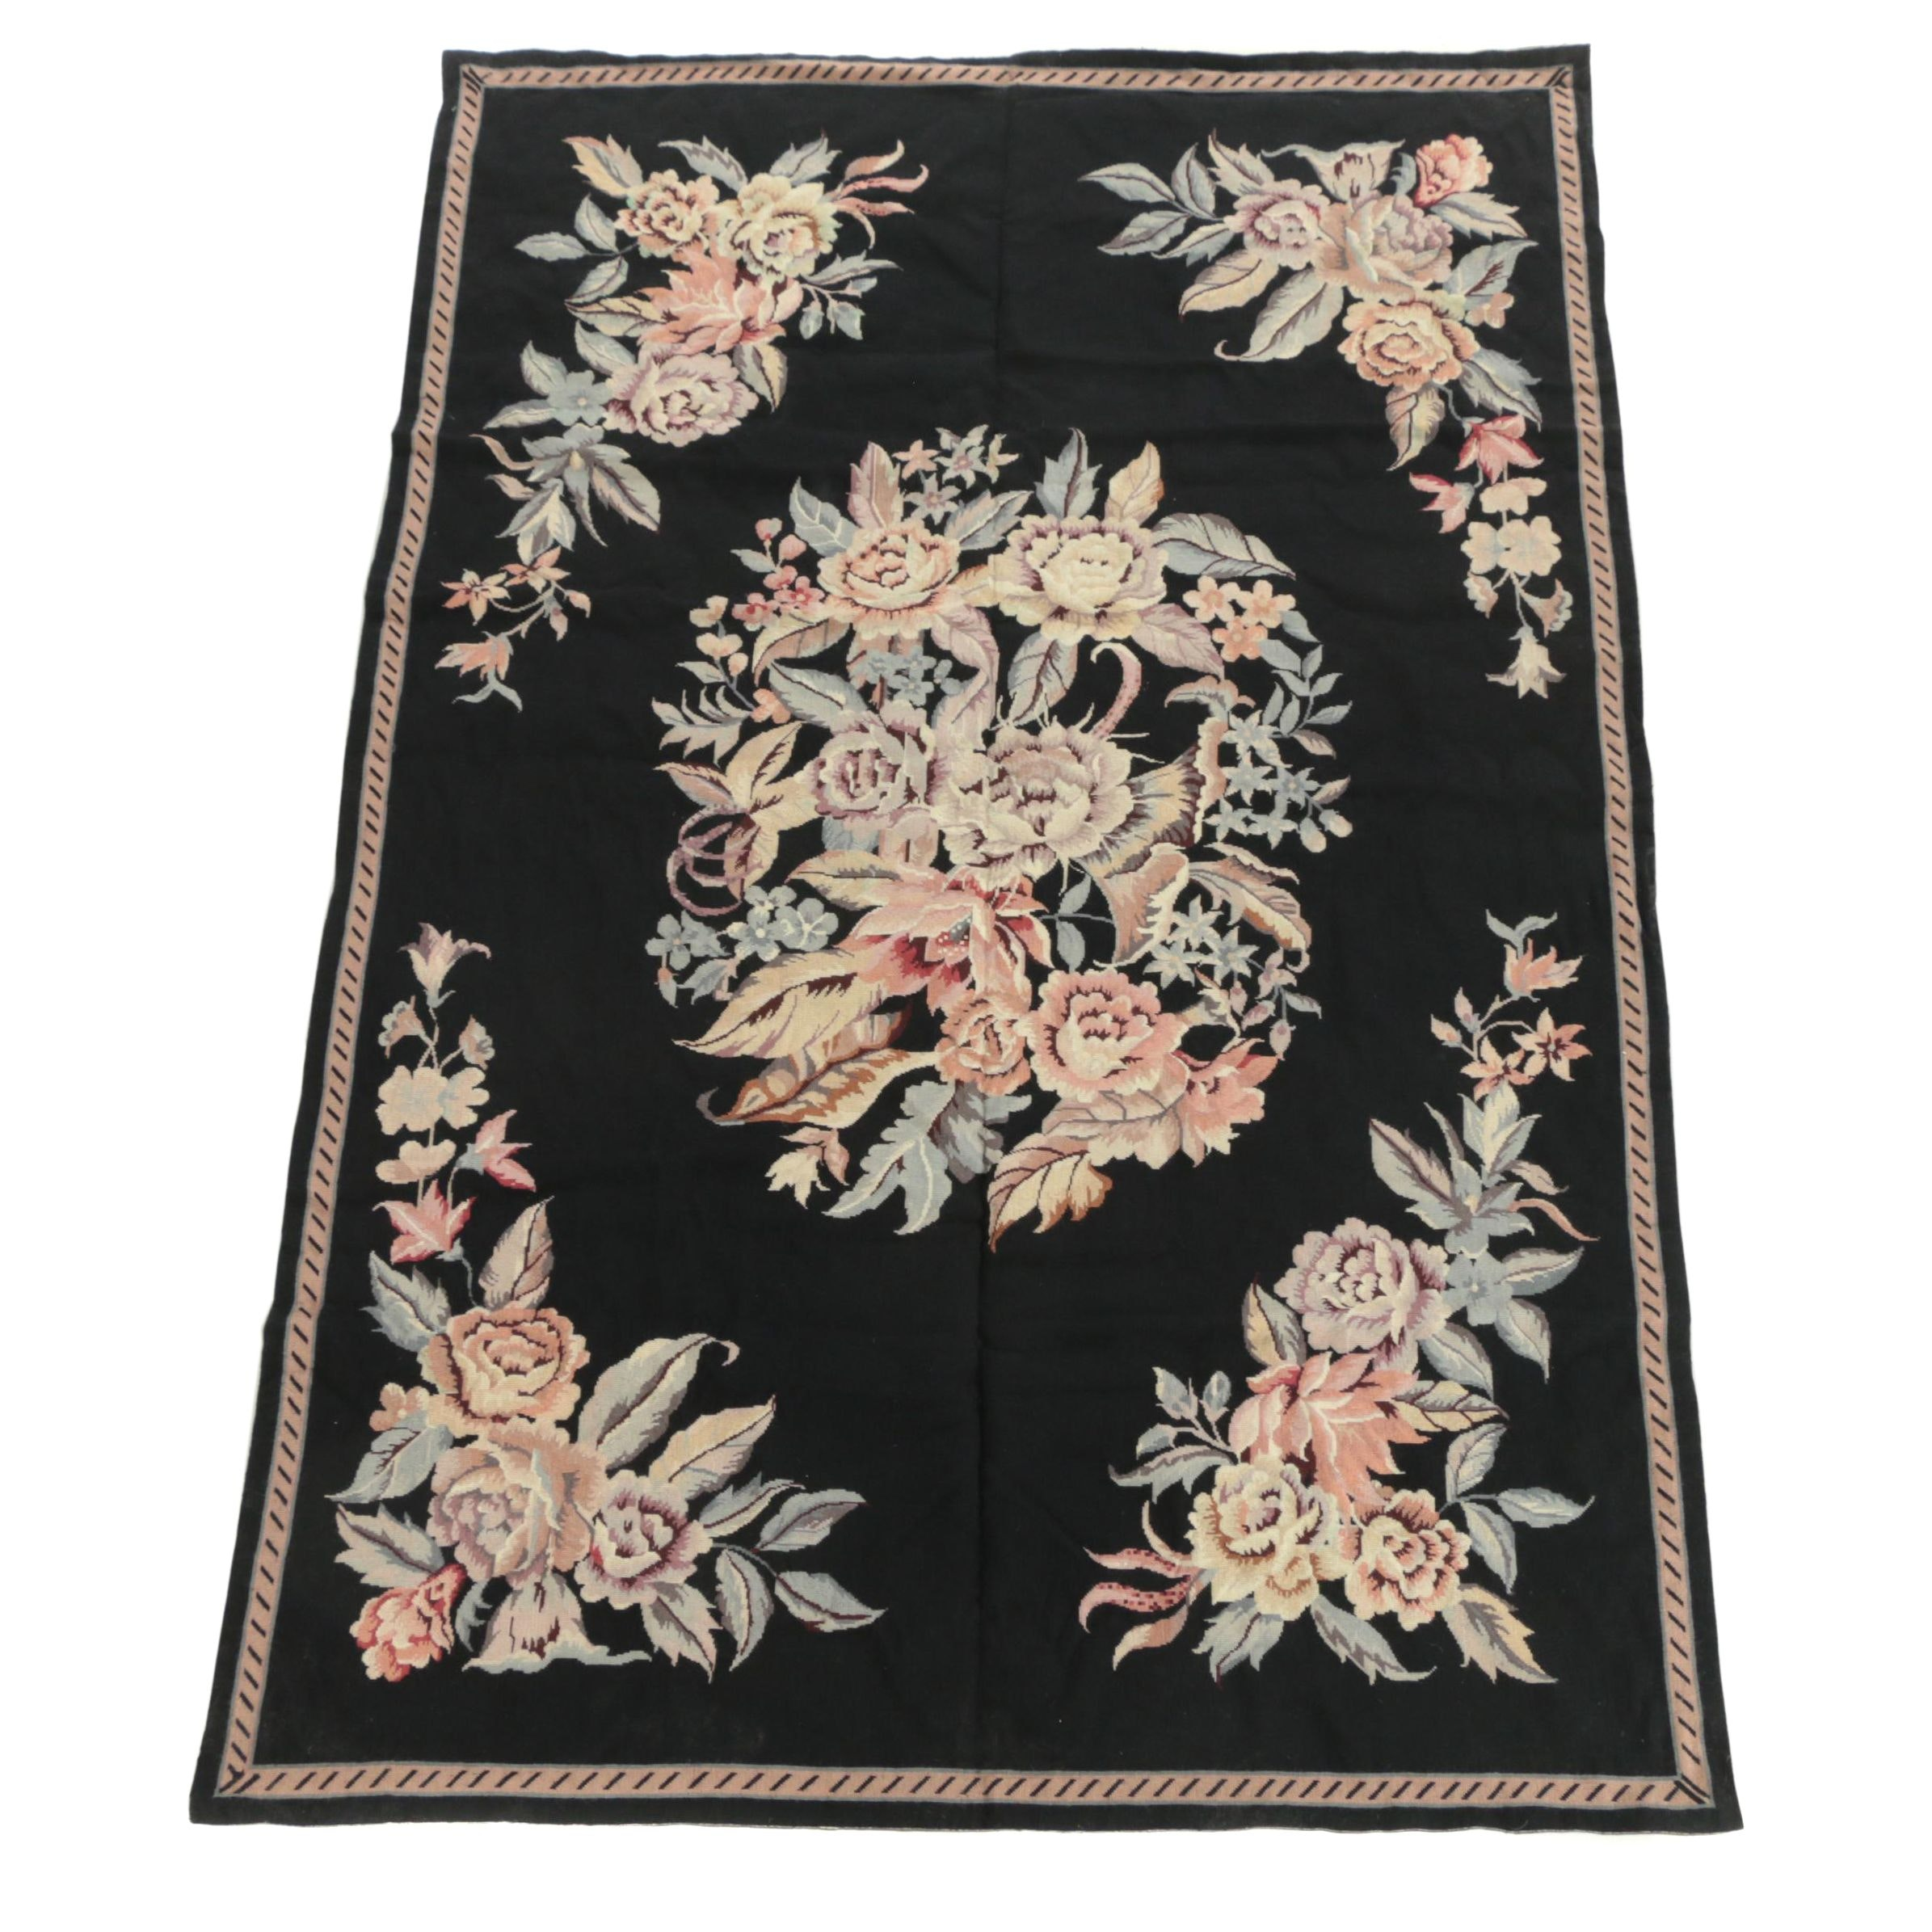 Chinese Needlepoint Floral Bouquet Wool Area Rug